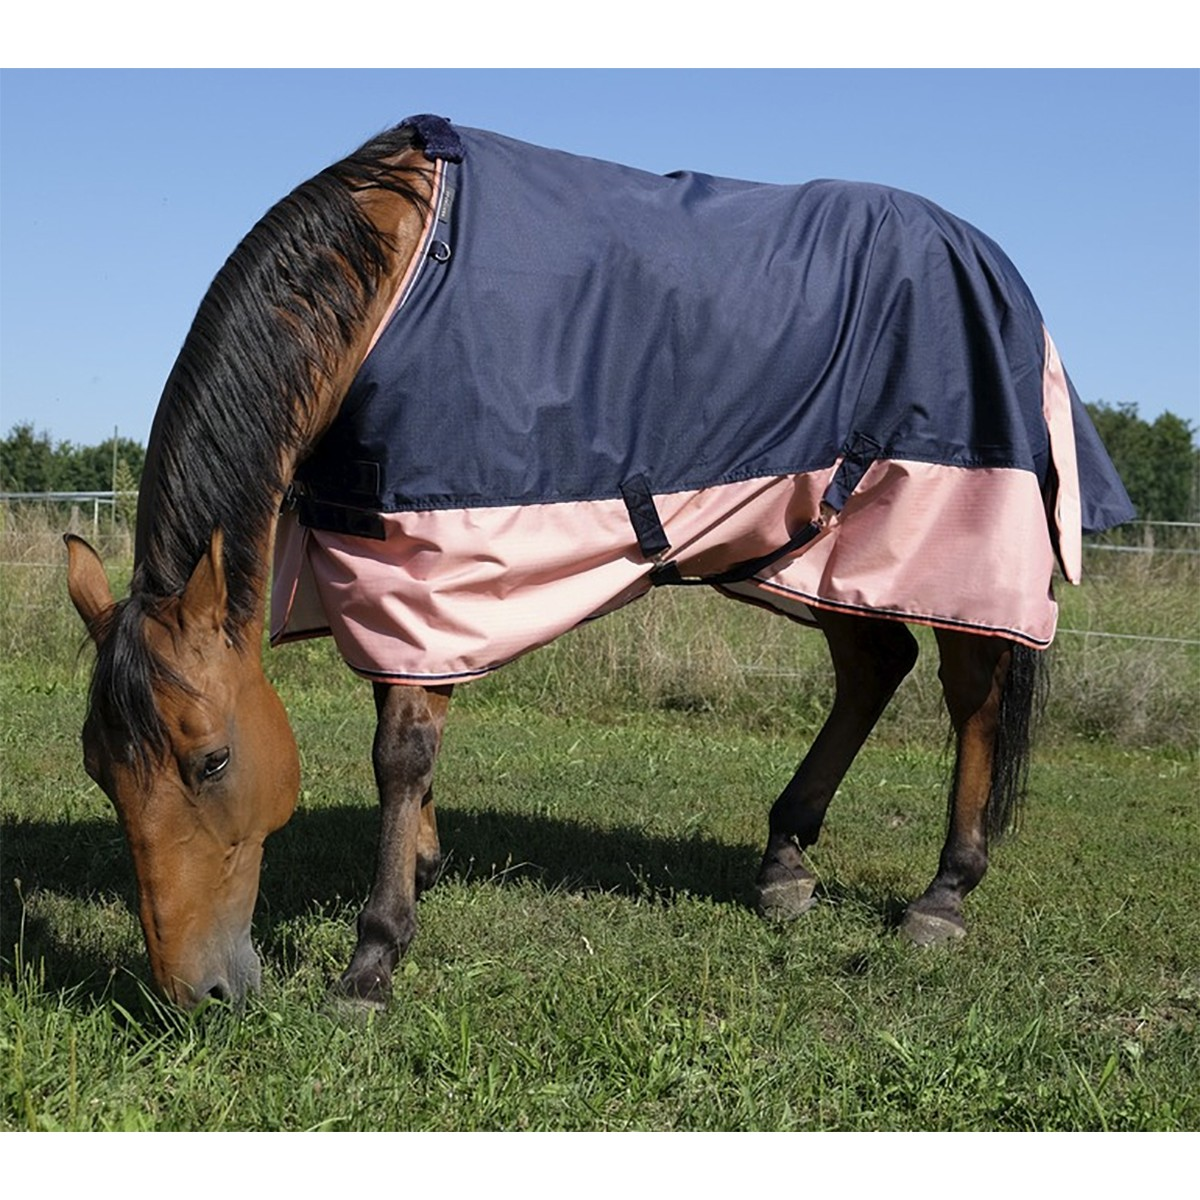 Equitheme Tyrex 600D 150g Navy/Pink Turnout Rug